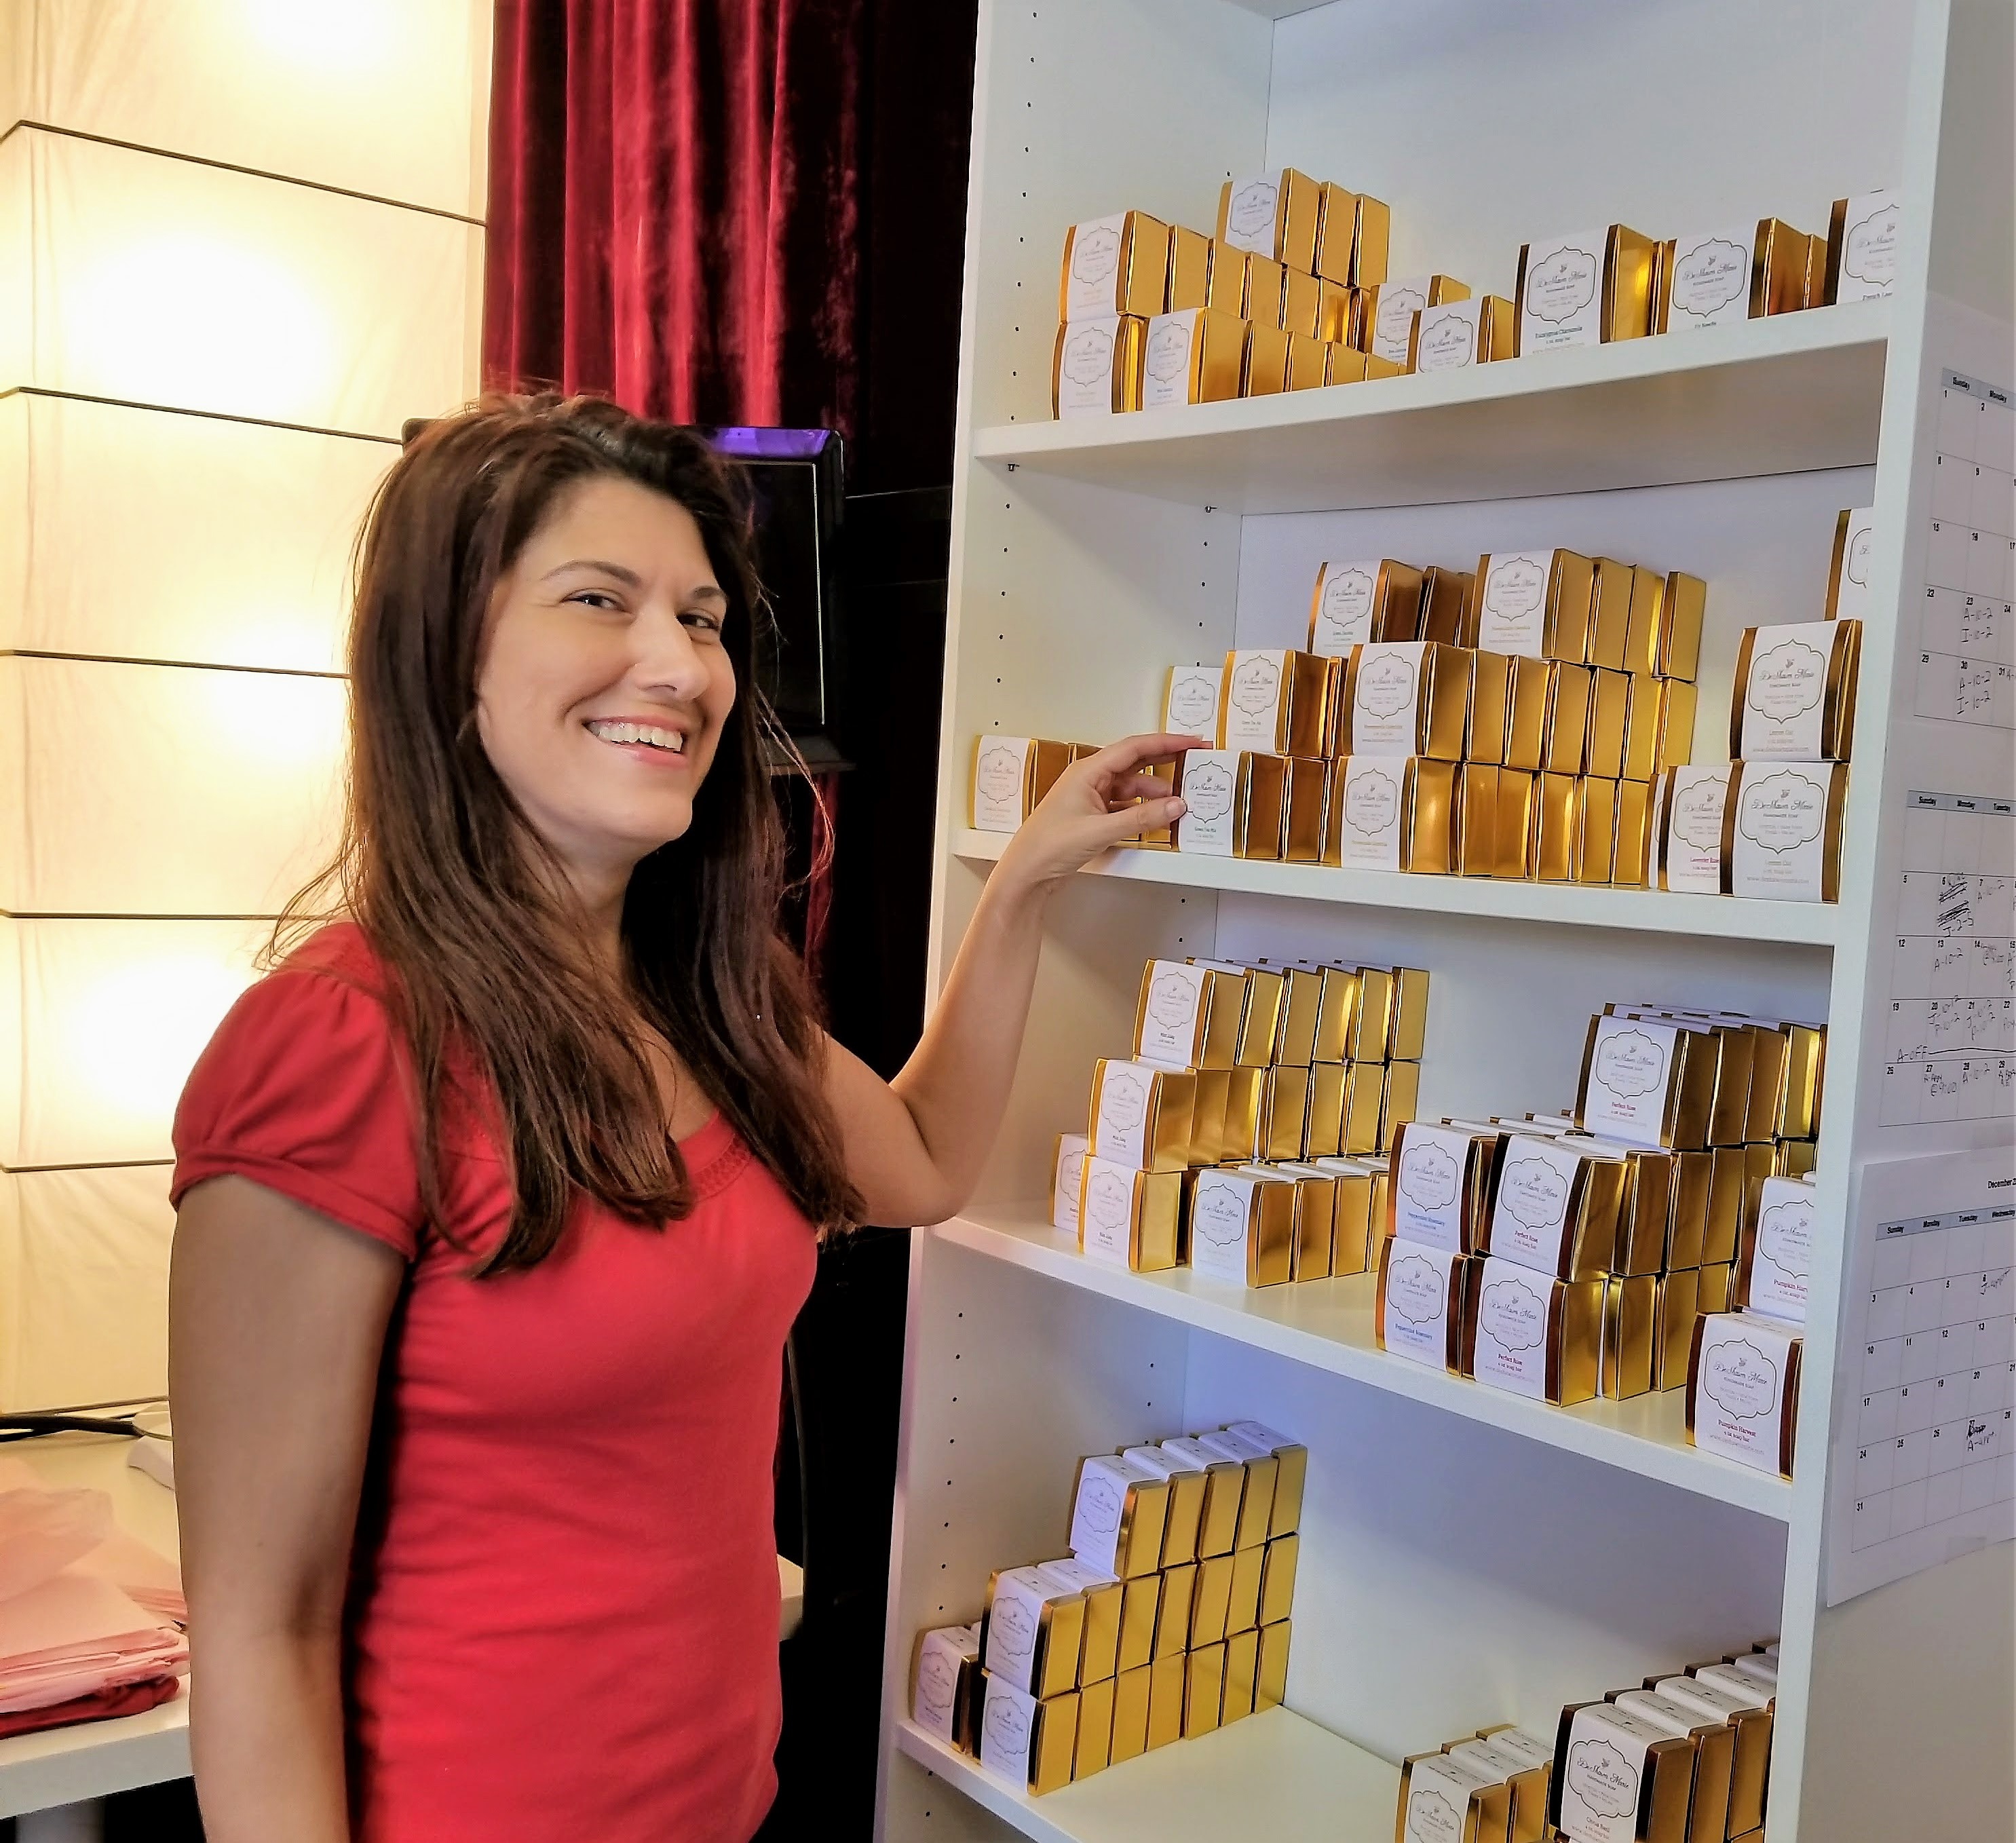 Paula stocking the shelves